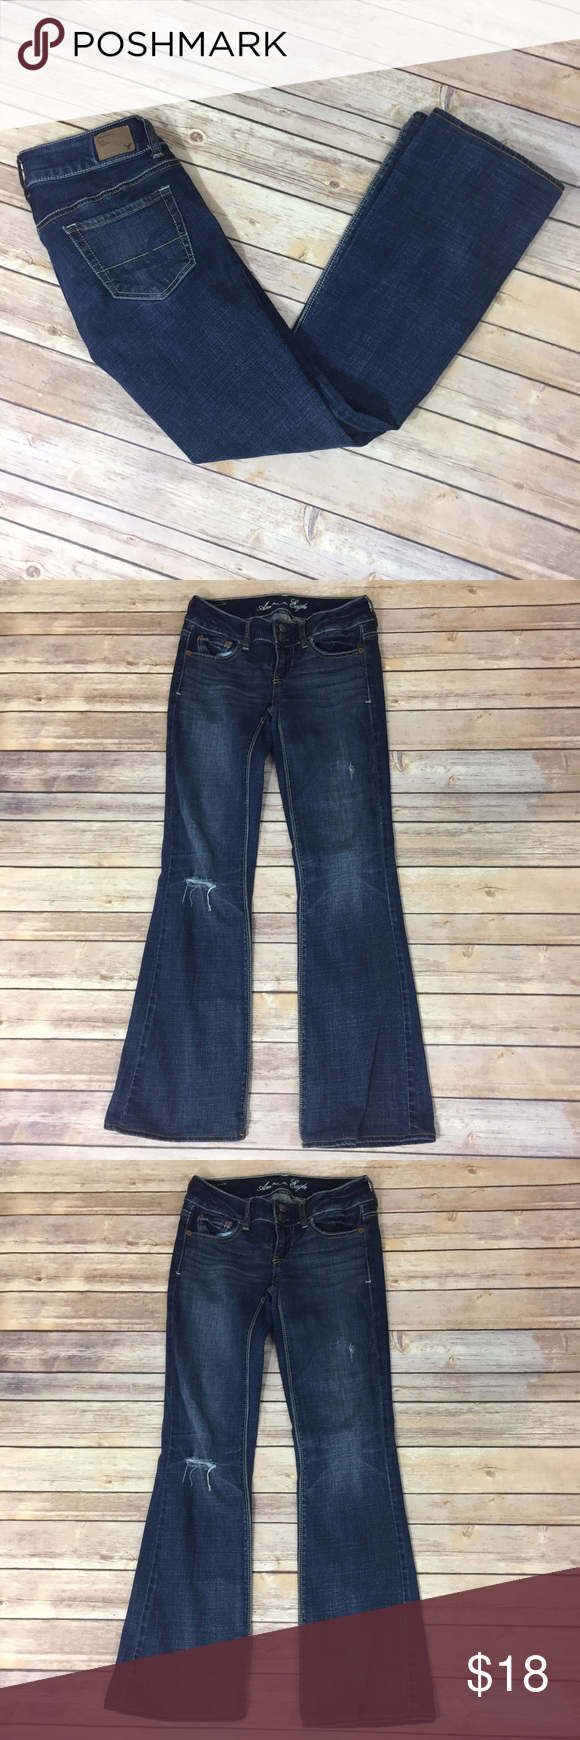 "✨AEO Artist Jeans✨ Stretch. Originally Size 0R, but length has been altered to 28"" inseam. 13"" waist laying flat. 7"" front rise, 11.5"" back rise. 99% cotton 1% spandex.    💕Need any other information? Measurements? Materials? Feel free to ask! 💕Unfortunately, I am unable to model items!  💕Don't be shy, I always welcome reasonable offers! 💕Fast shipping! Same or next day! 💕Sorry, no trades!  Happy Poshing!☺️ American Eagle Outfitters Jeans Boot Cut"